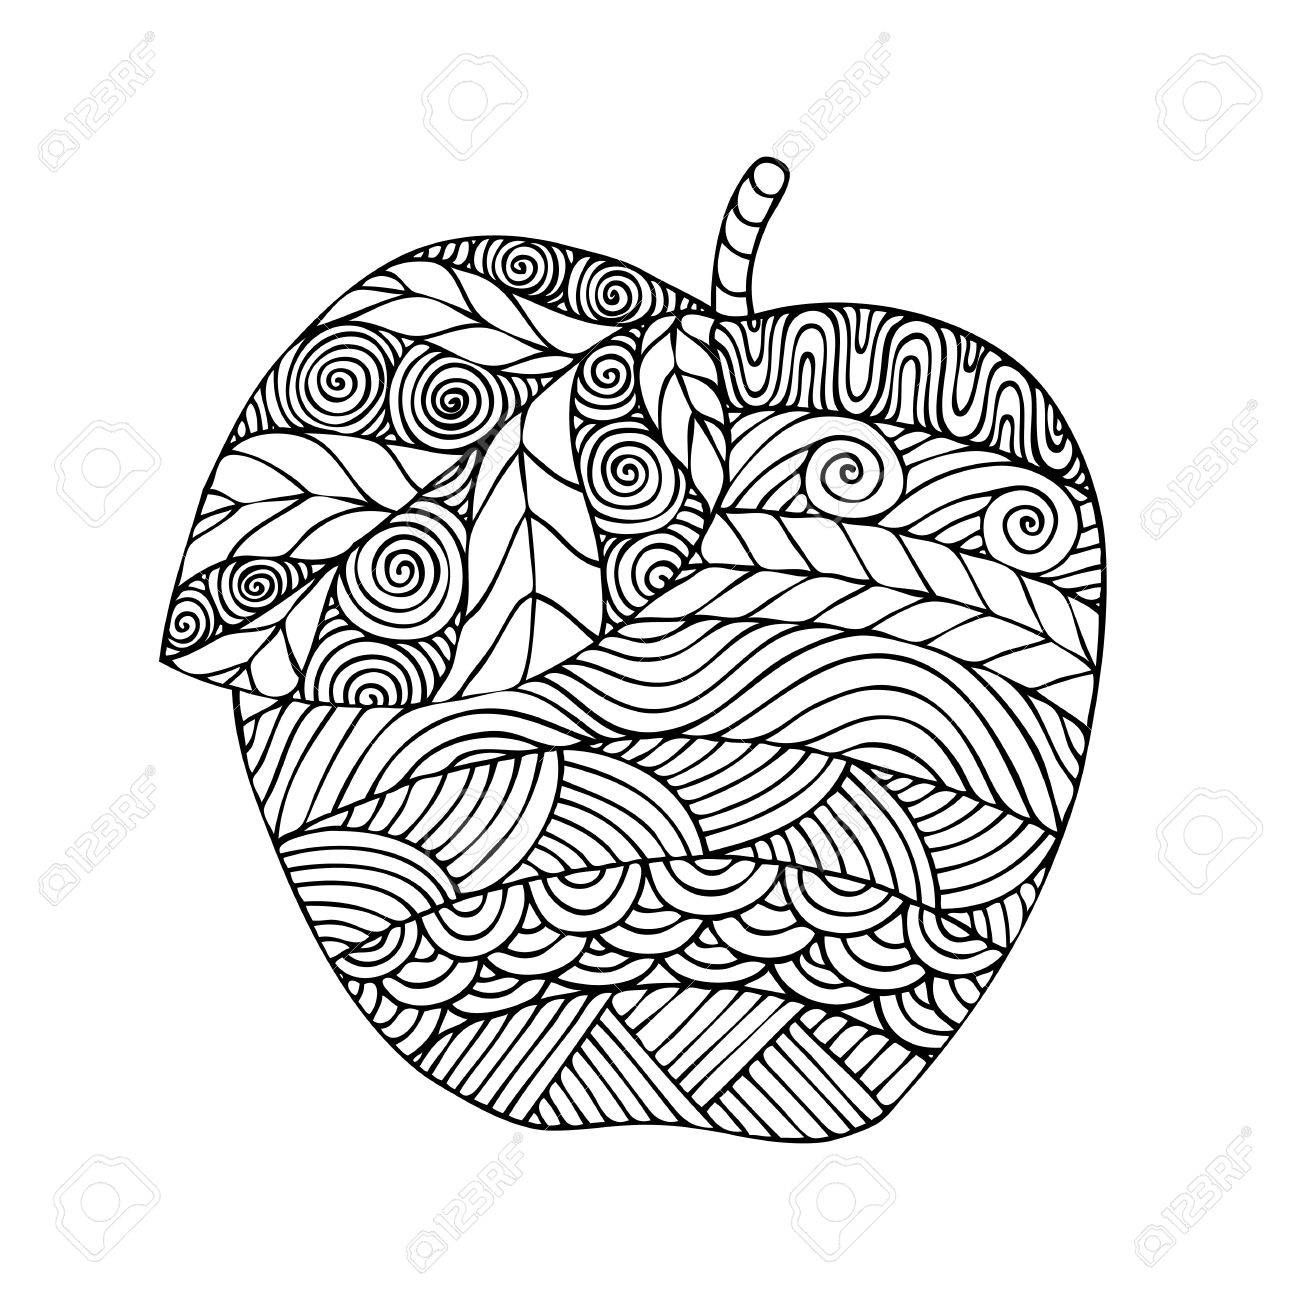 Apple Picture For Colouring Coloring Pages Adult Coloring Book